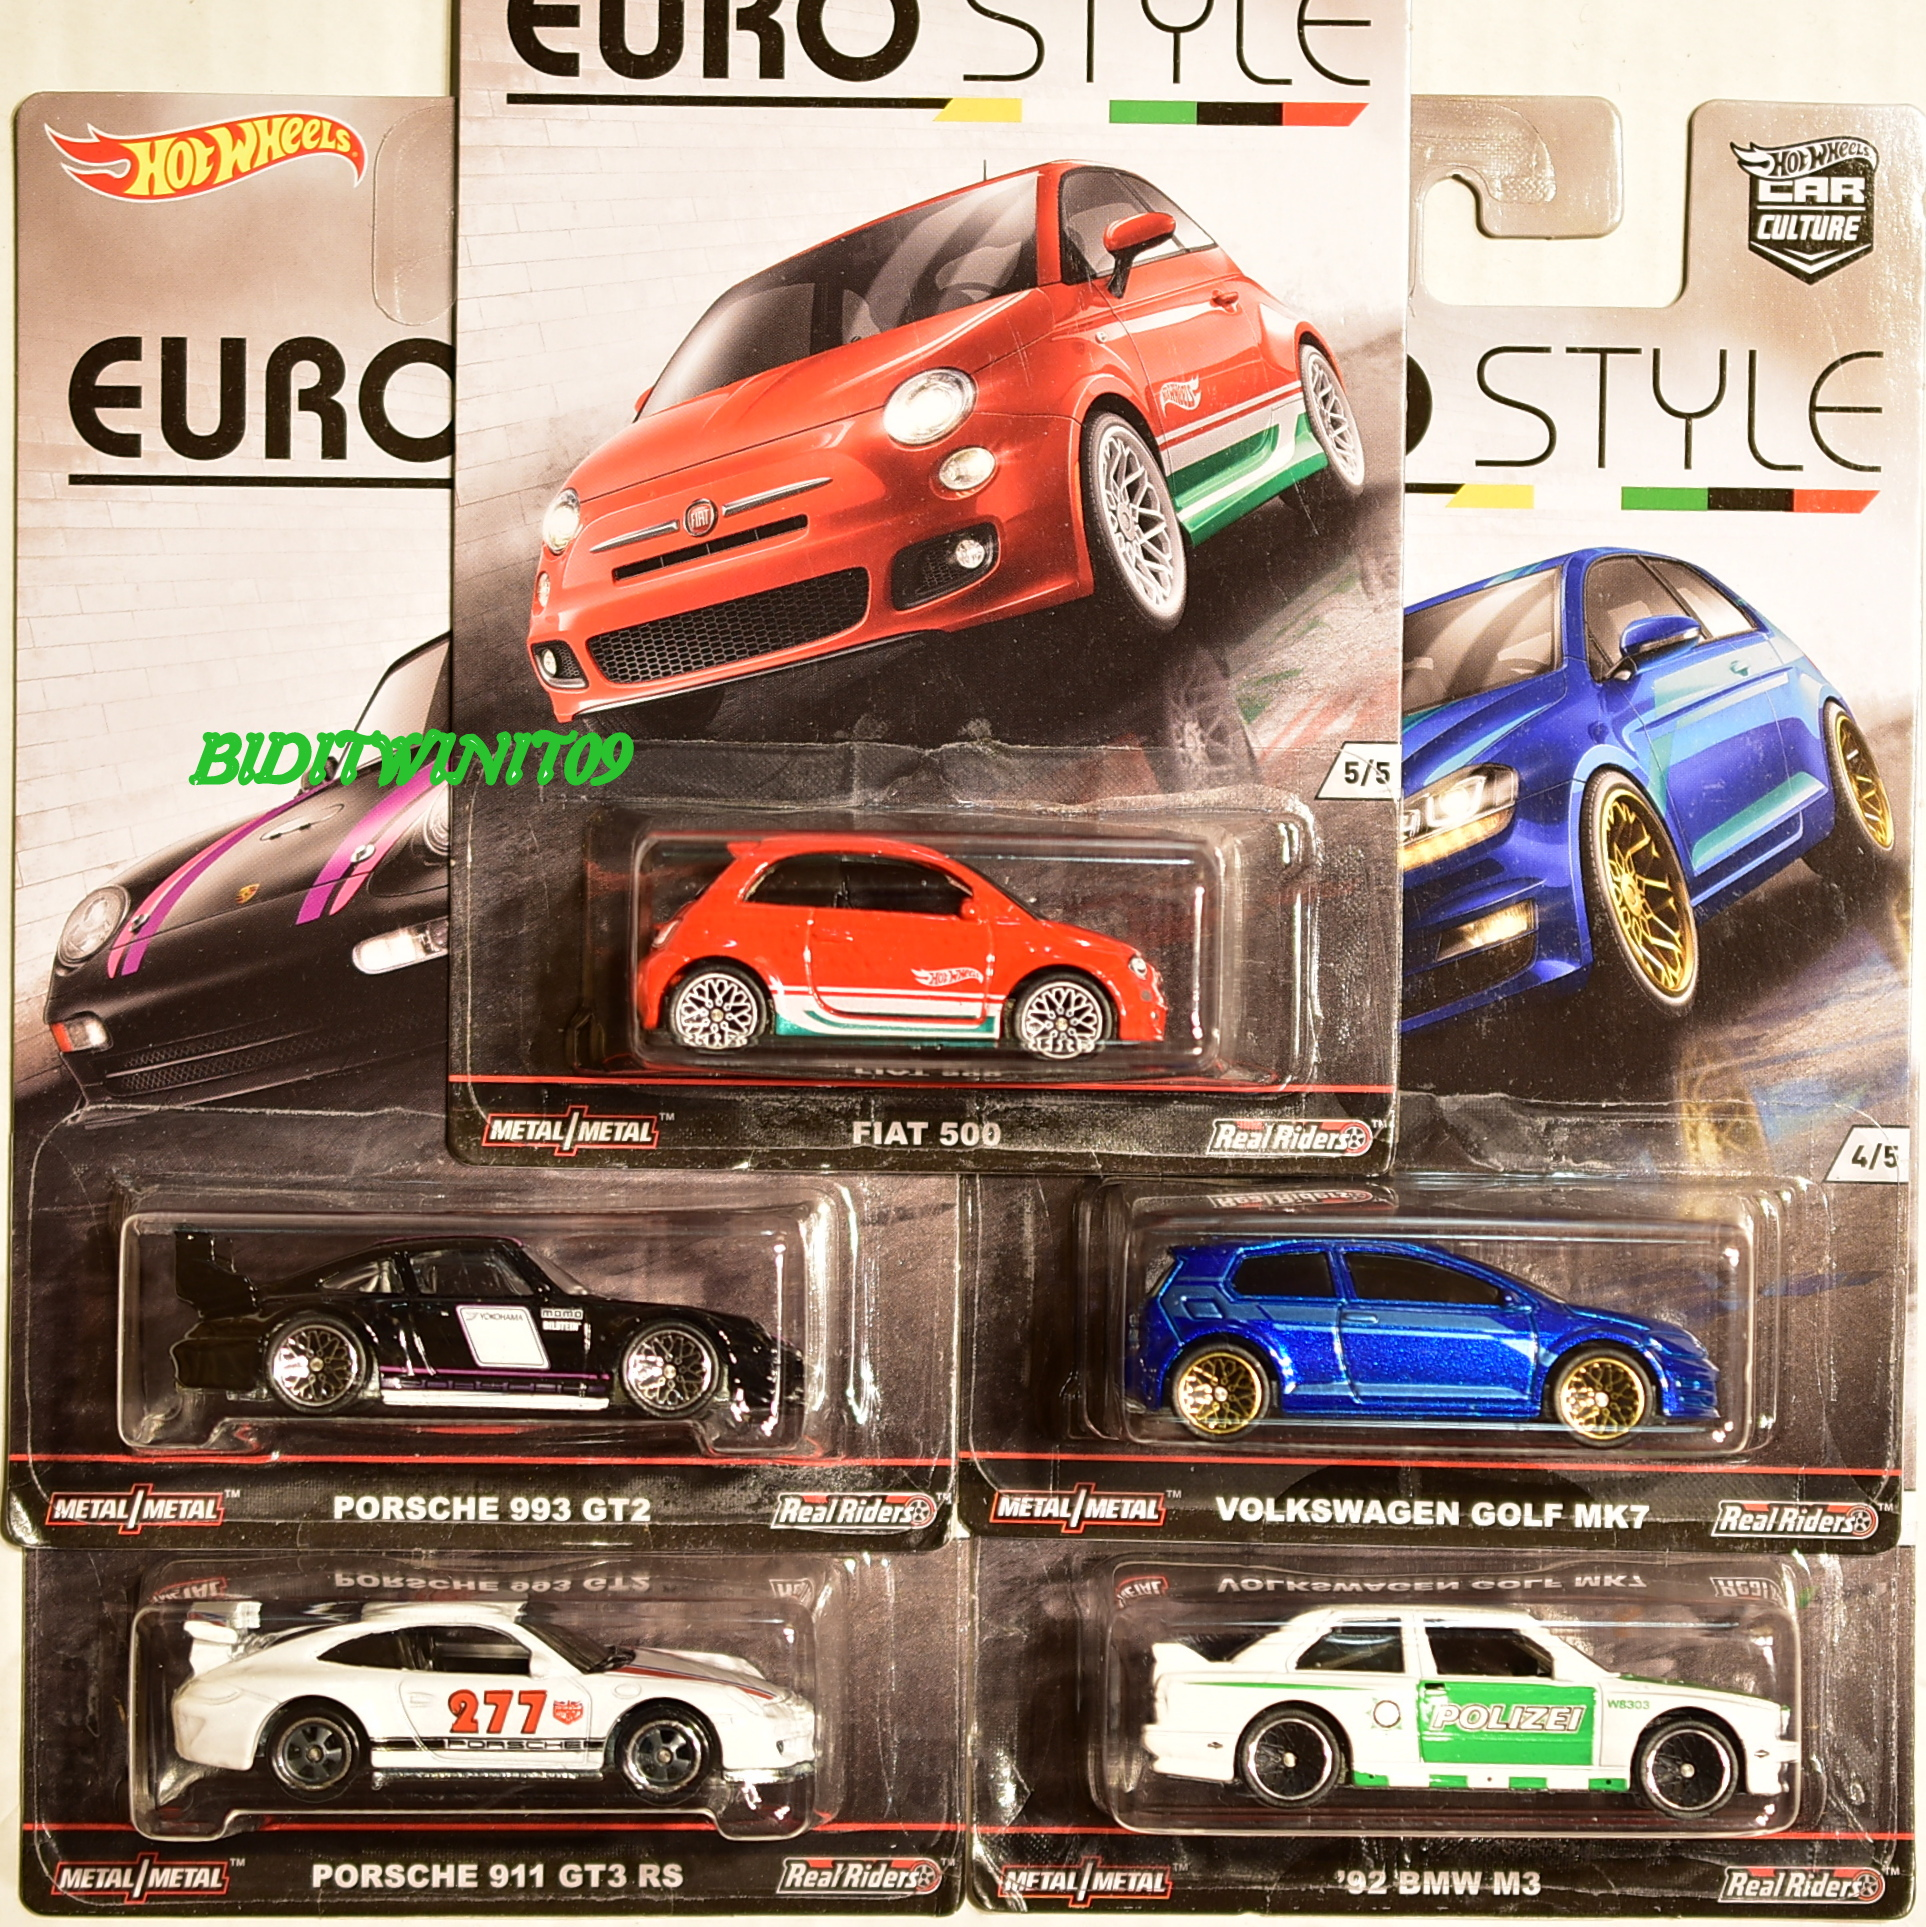 HOT WHEELS 2016 CAR CULTURE EURO STYLE COMPLETE SET OF 5 BMW FIAT PORSCHE